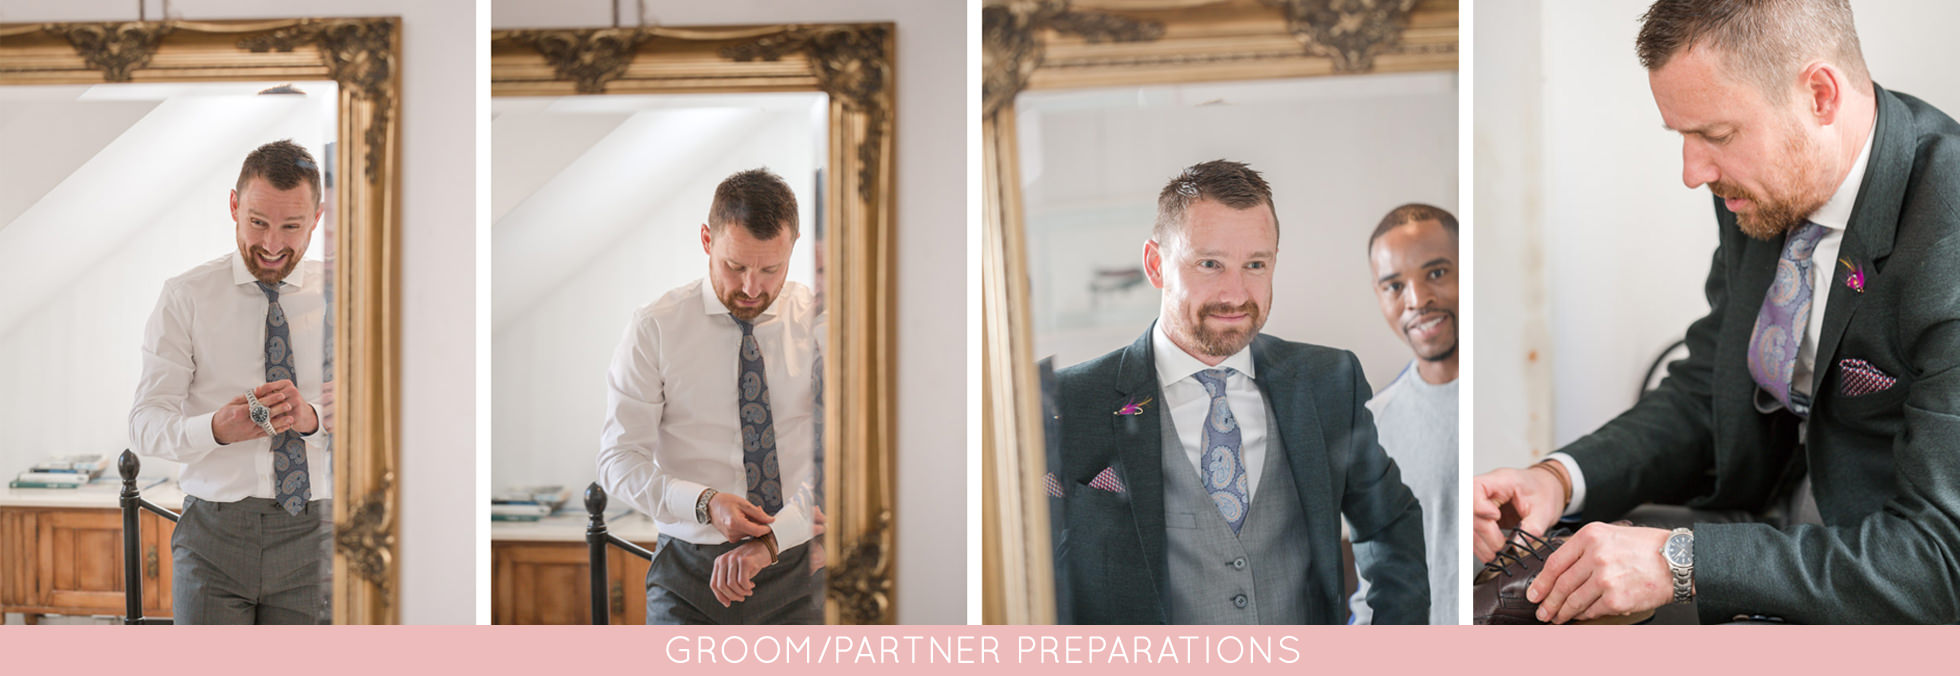 photographs of the groom getting ready at a wedding